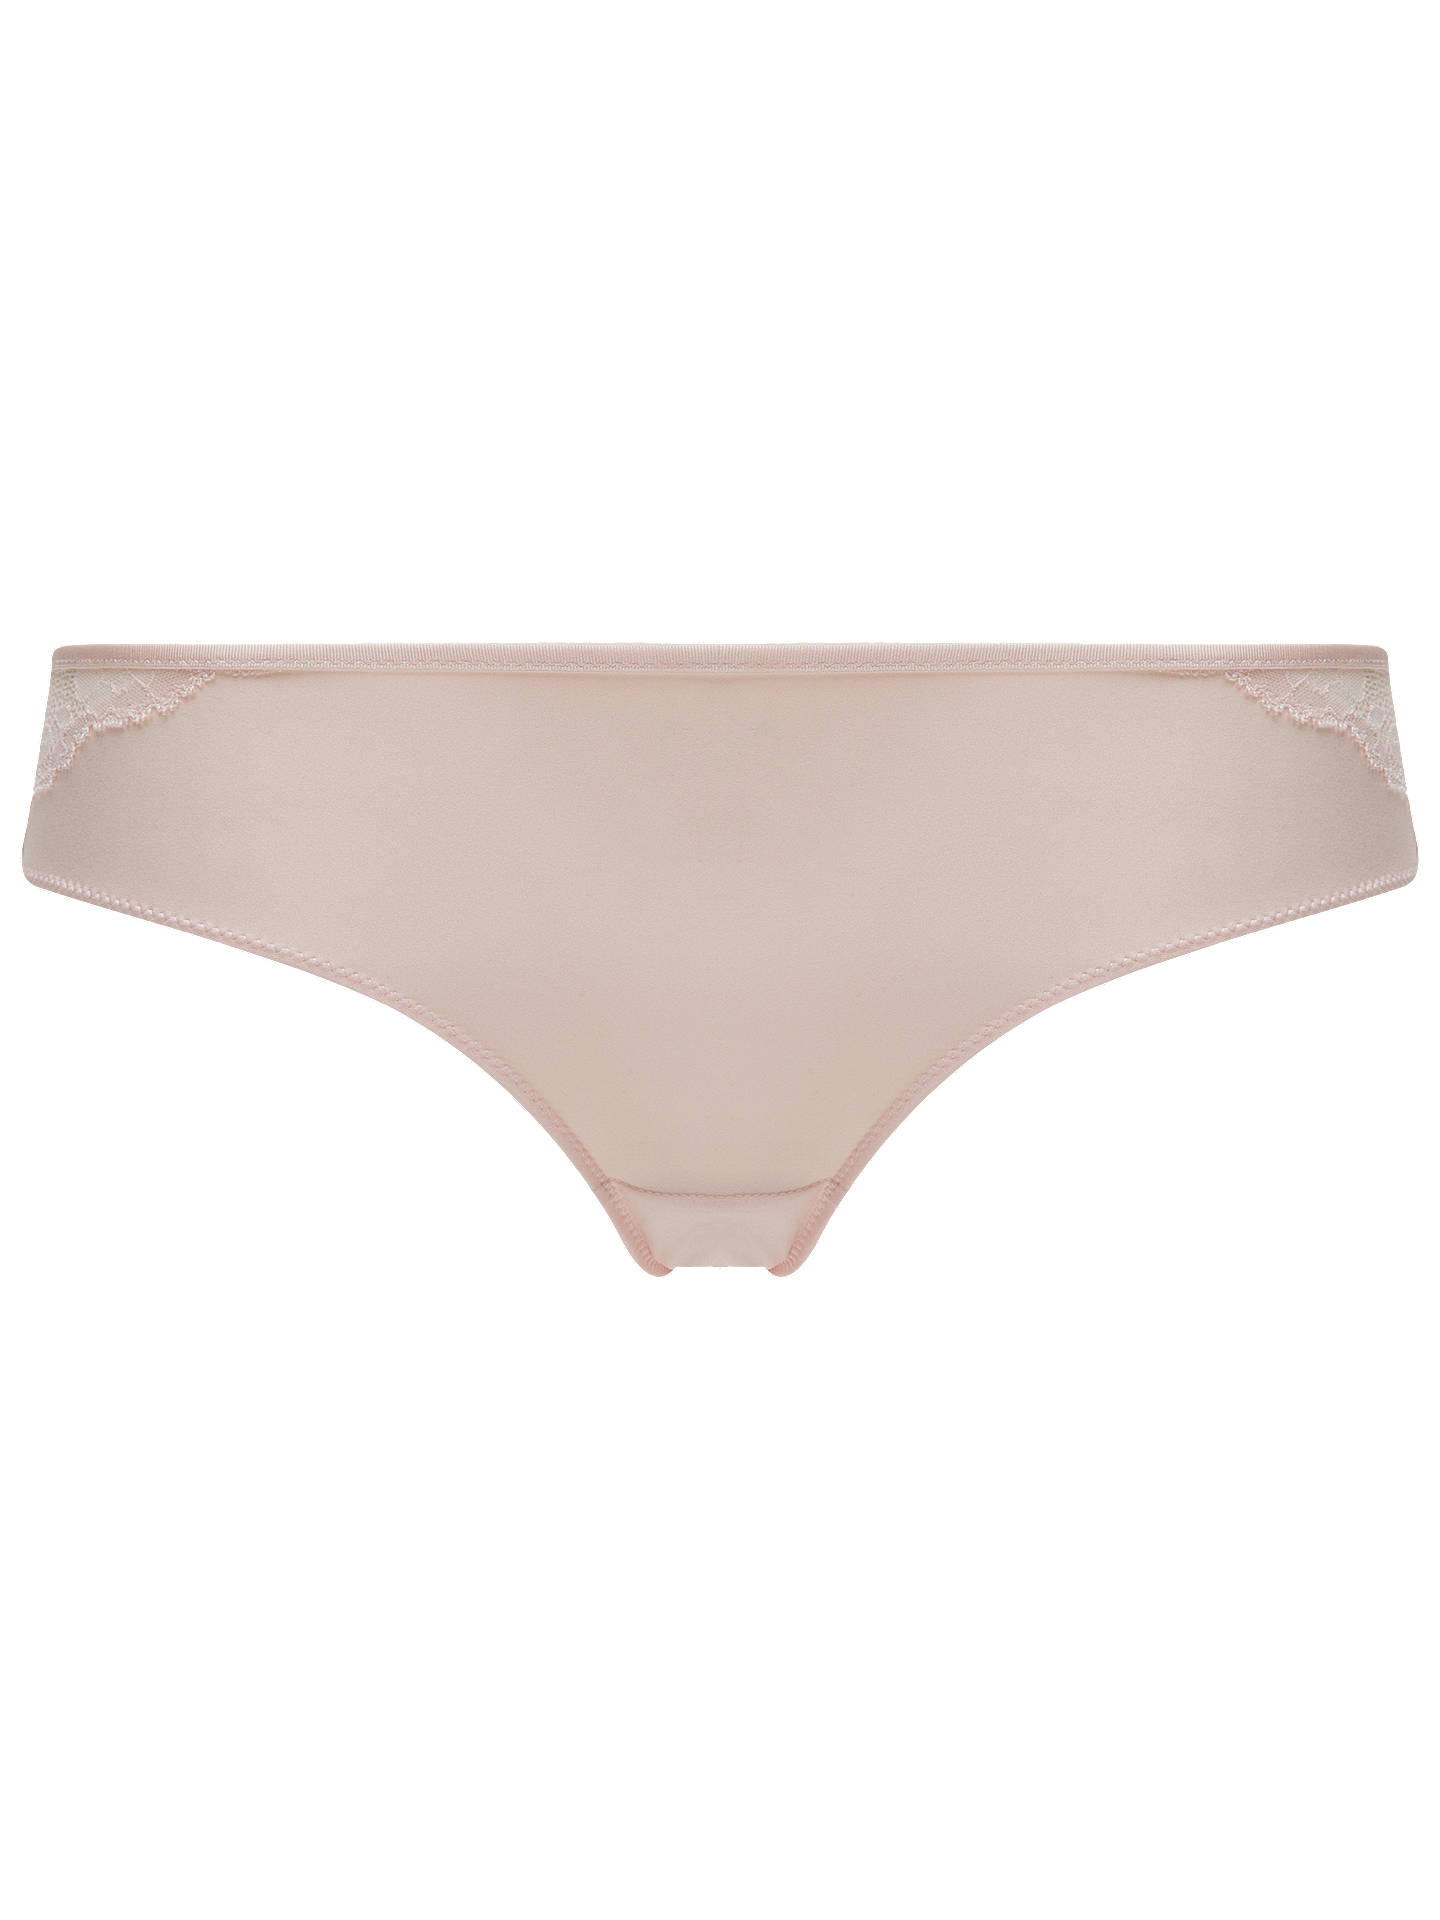 BuyChantelle Everyday Lace Briefs, Soft Pink, S Online at johnlewis.com